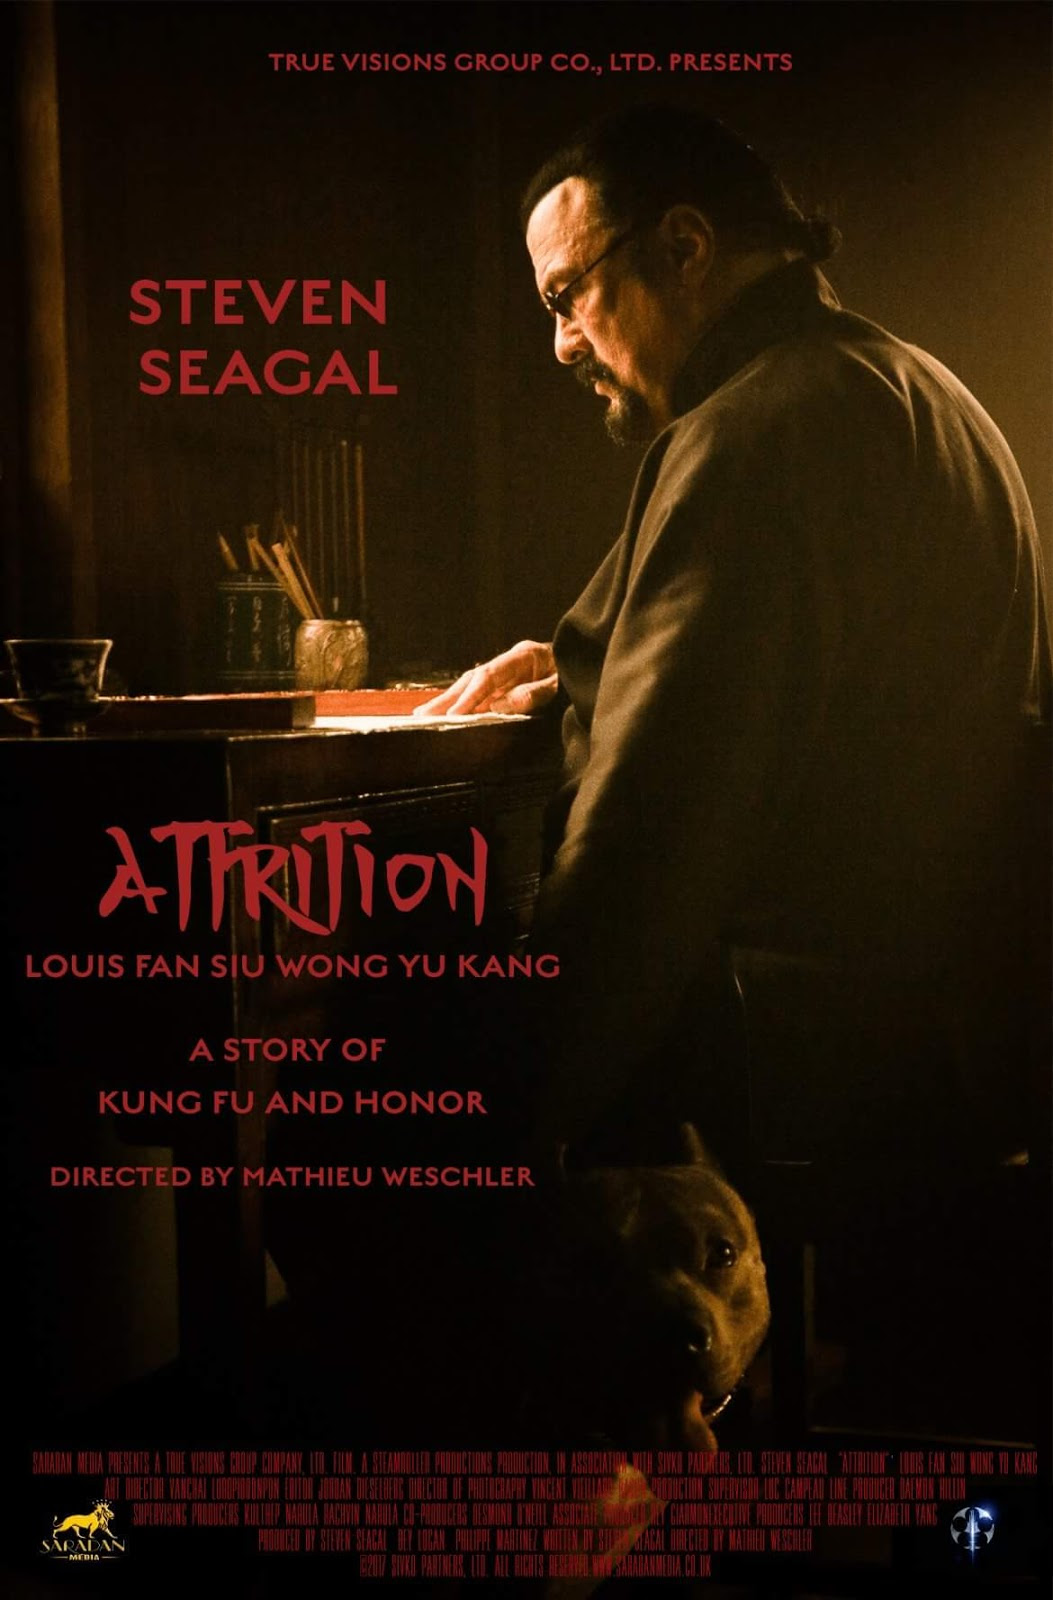 ATTRITION: Sales Poster For Seagal Thriller Tells Of Kung Fu, Honor, And An Adorable Pitbull